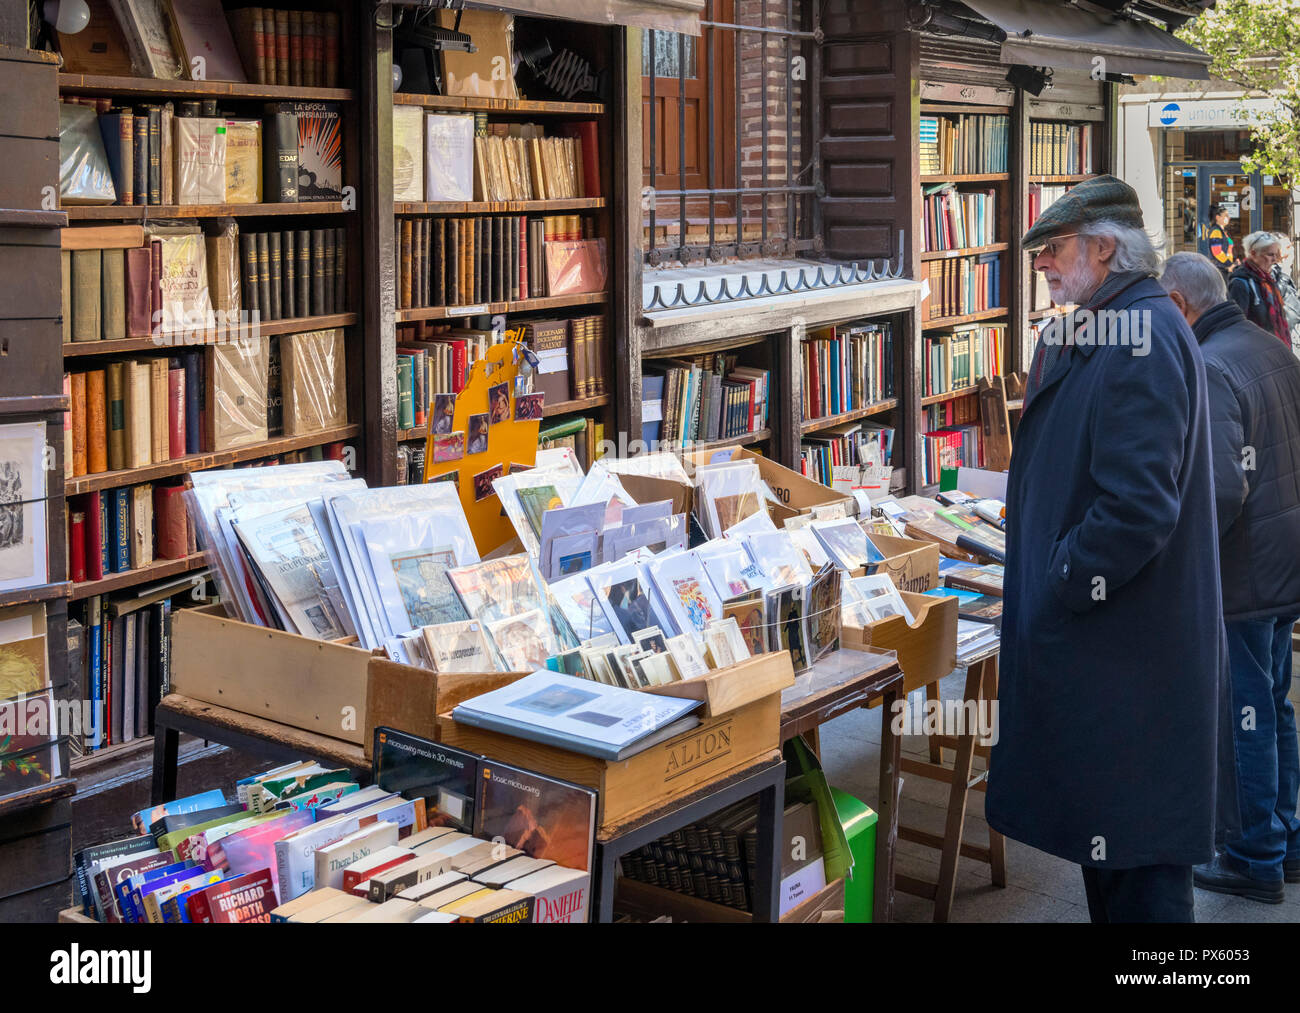 Man browsing books on a stall selling second hand books and art prints, Calle del Arenal, Madrid, Spain - Stock Image